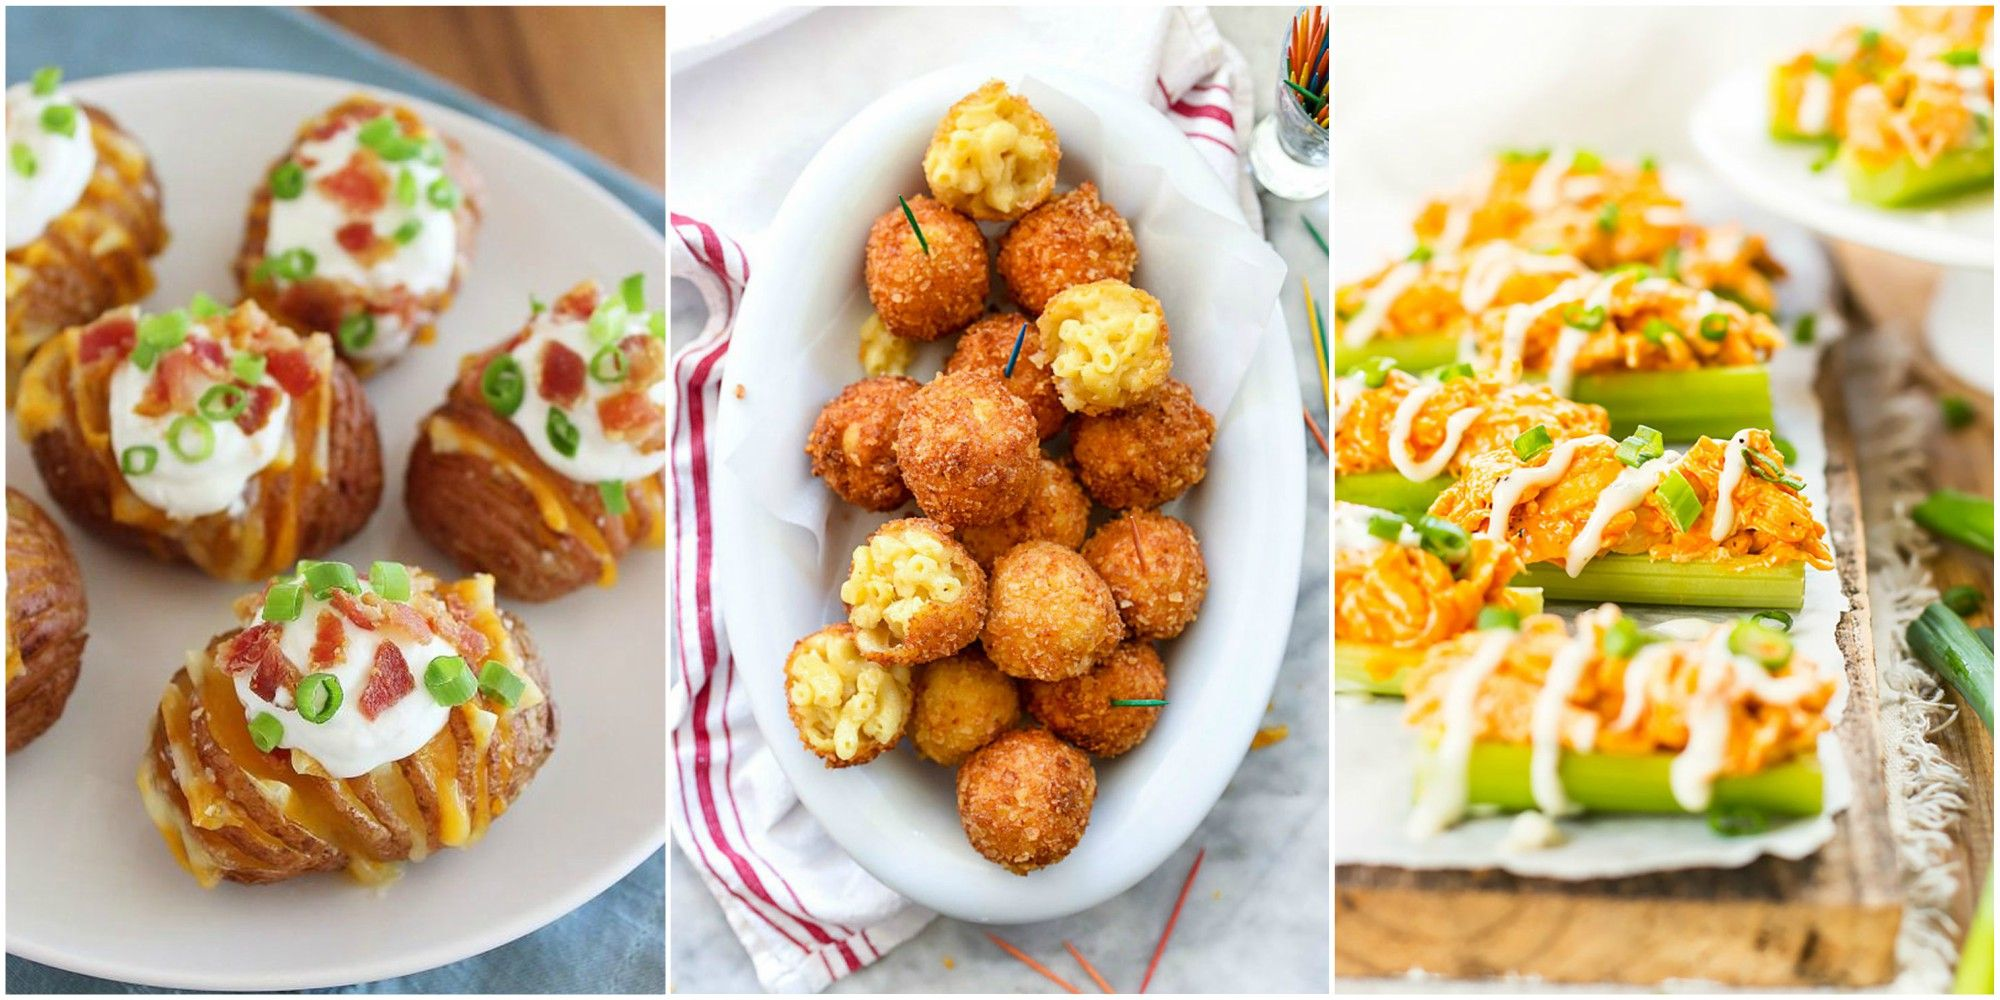 45 Super Bowl Snacks That Will Score Big Points On Game Day